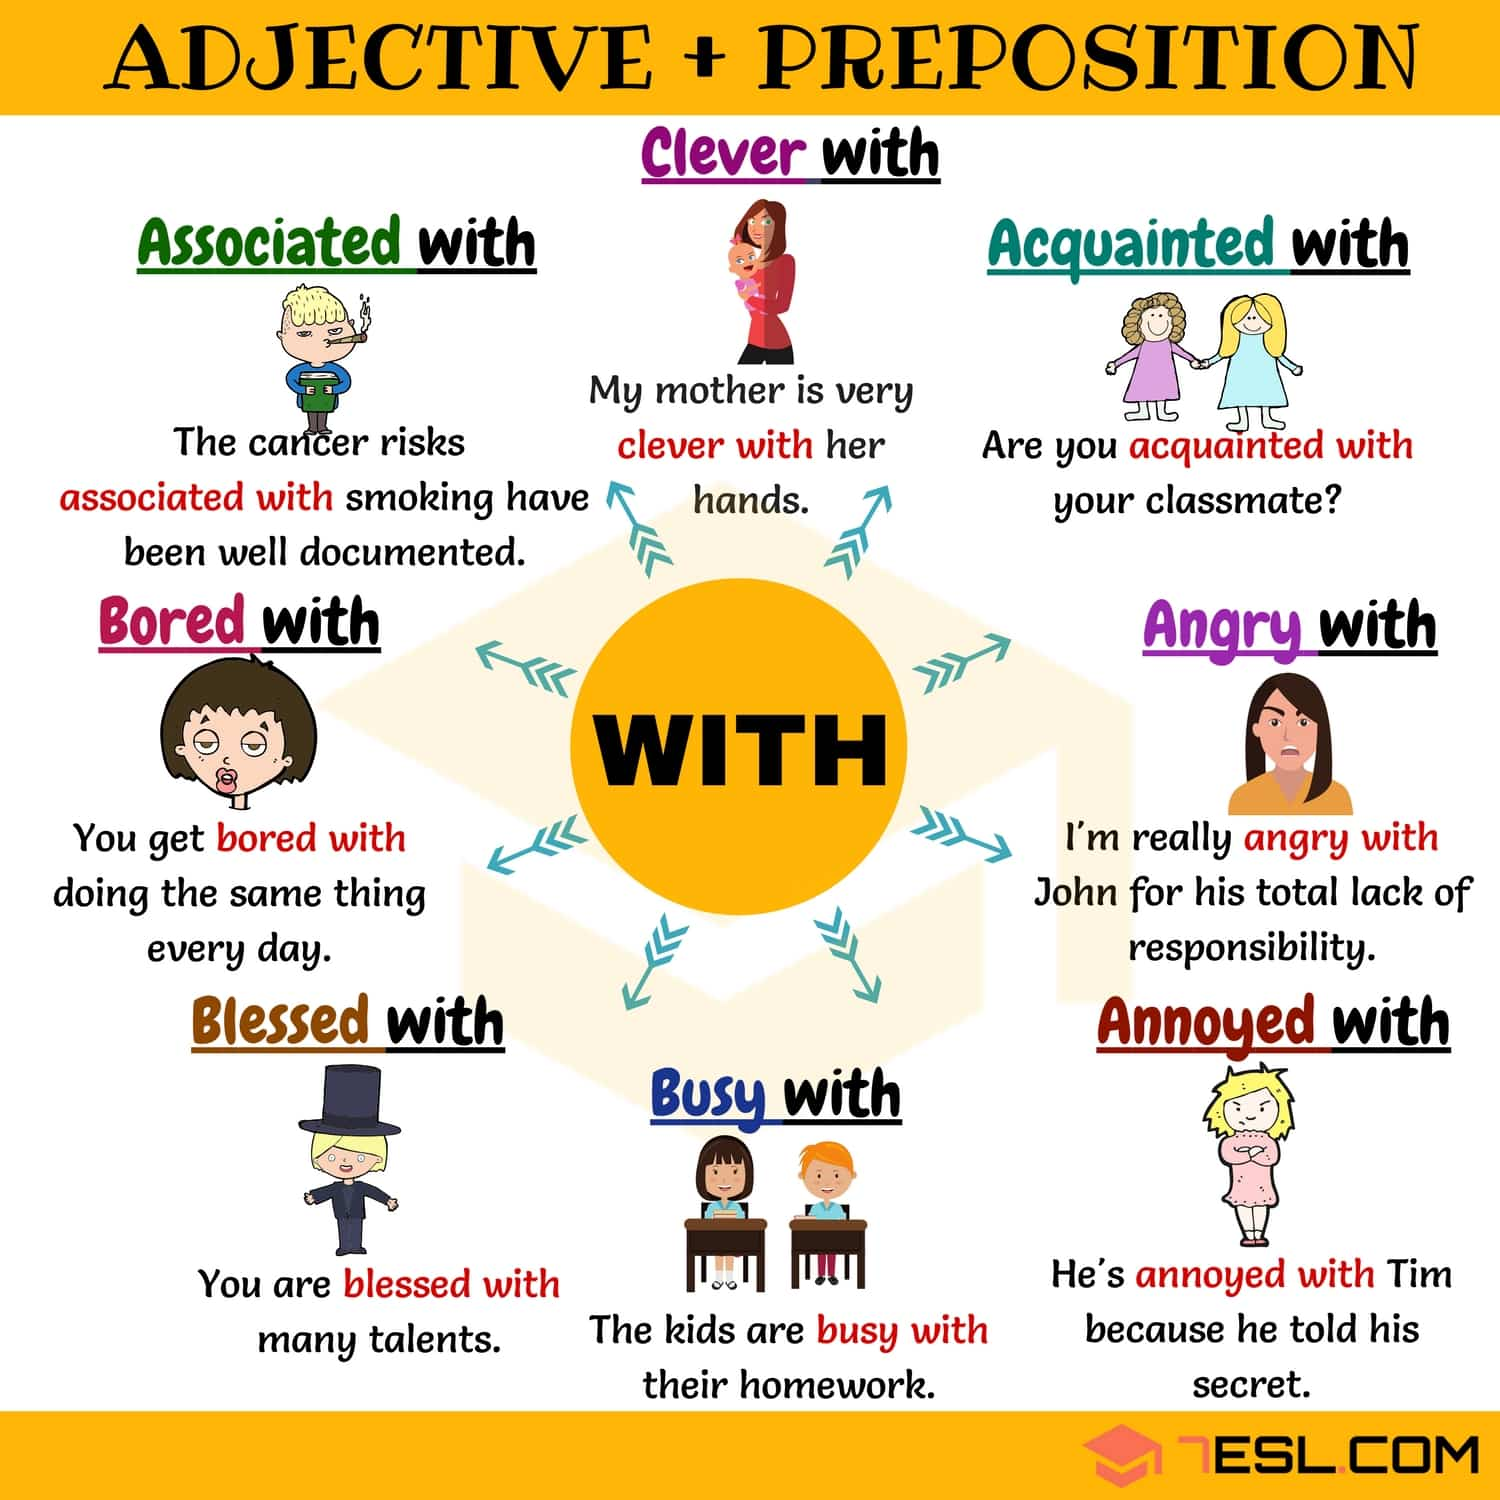 35 Common Adjective and Preposition Combinations - WITH